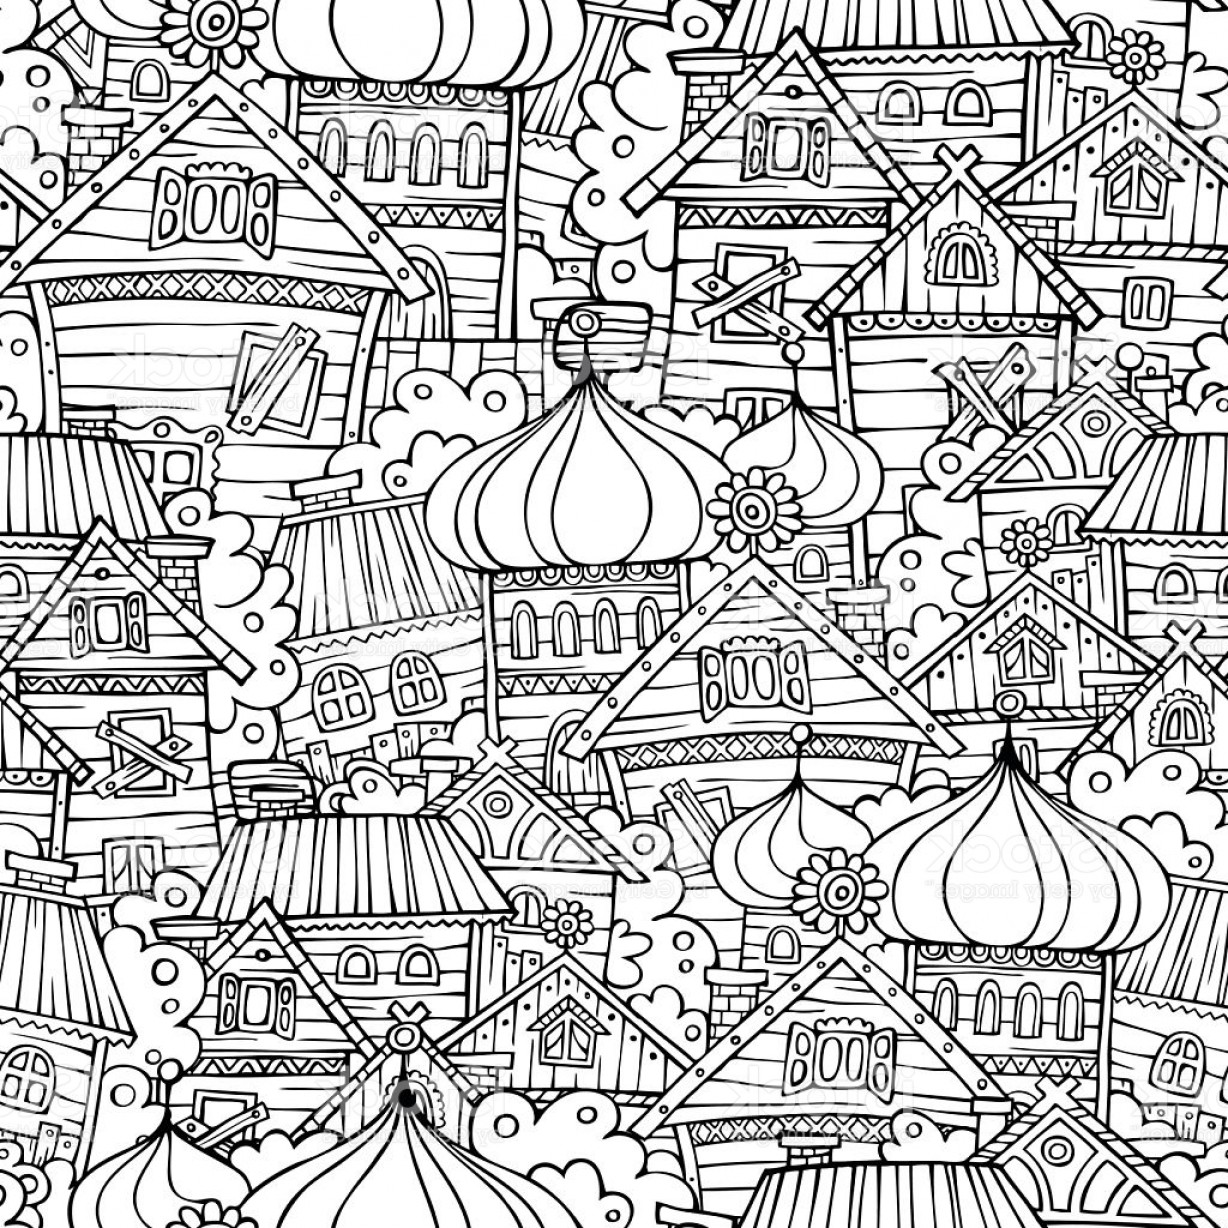 Russian Patterns Vector: Cartoon Fairy Tale Drawing Russian Village Seamless Pattern Gm